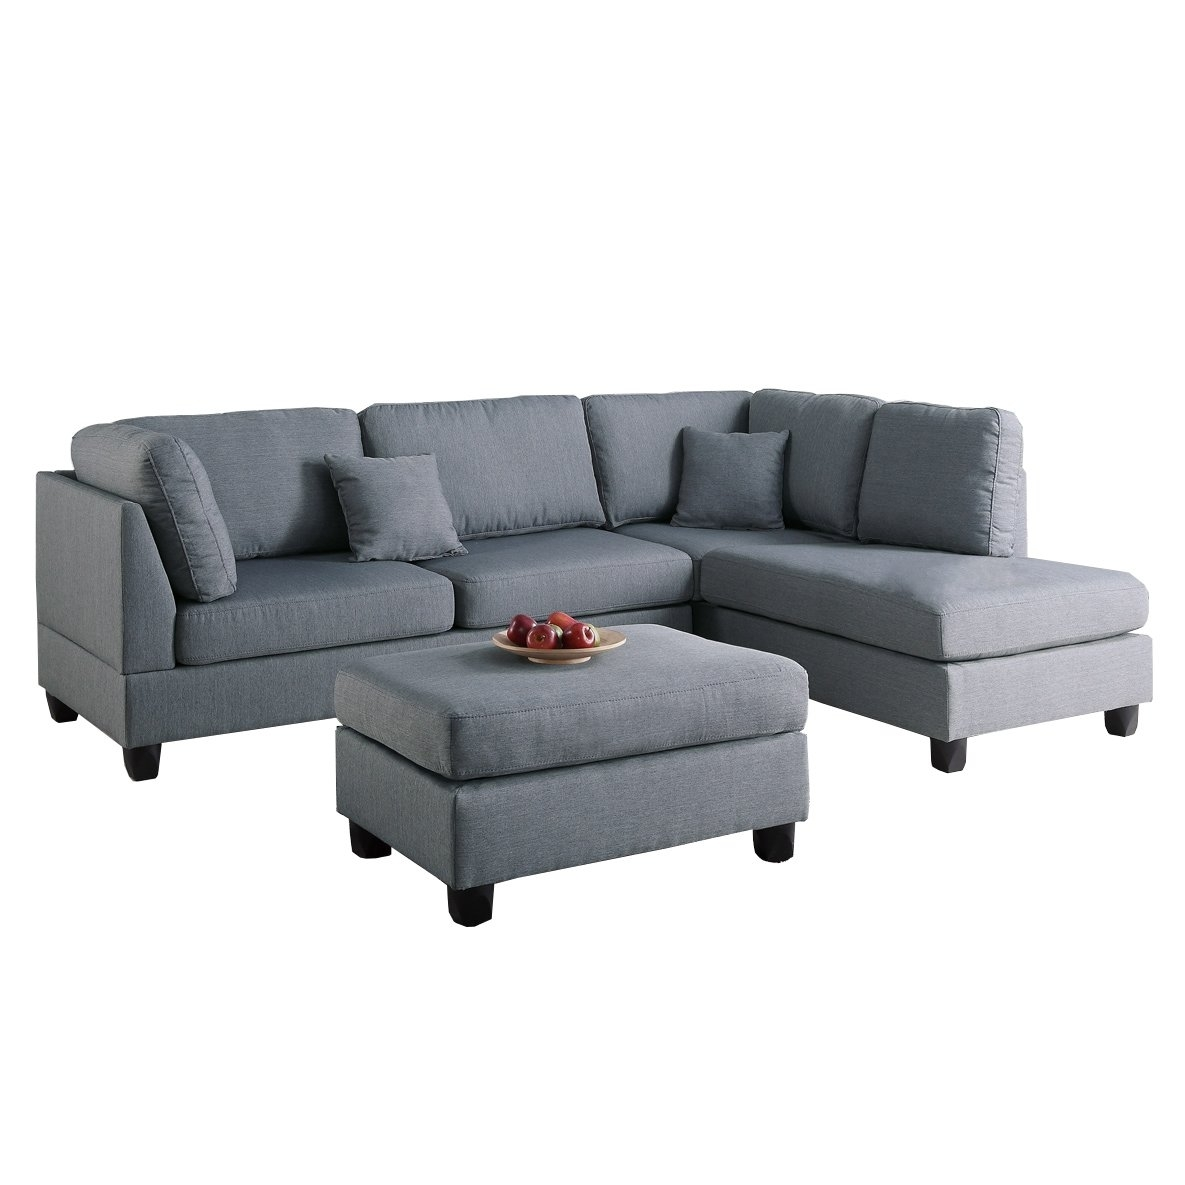 Furniture: Changeable Sofa | Walmart Sectional Sofa | Reversible With Sectional Sofas At Walmart (View 5 of 15)